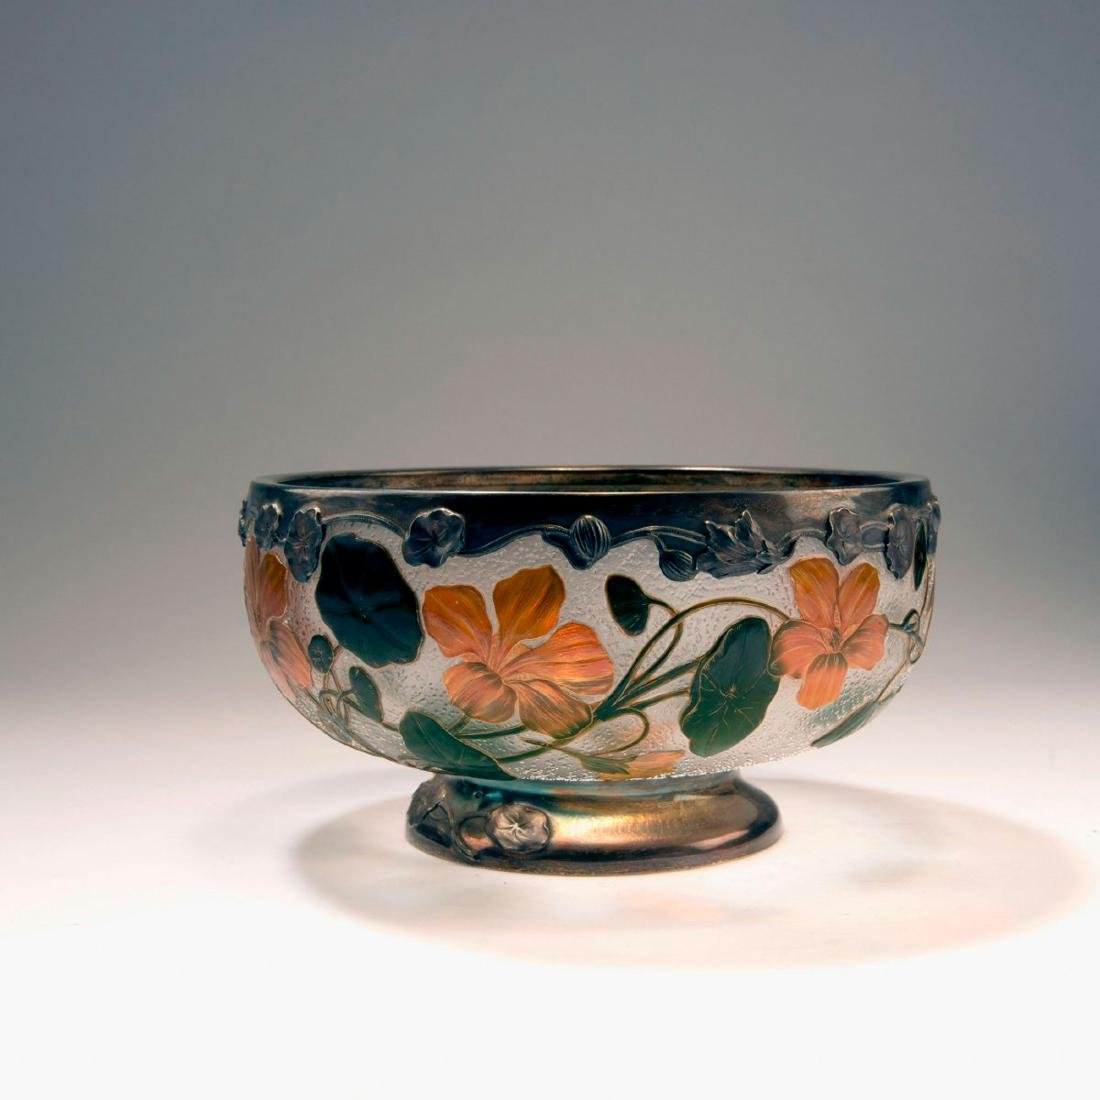 'Capucines' bowl with silver mounting, 1898-1900